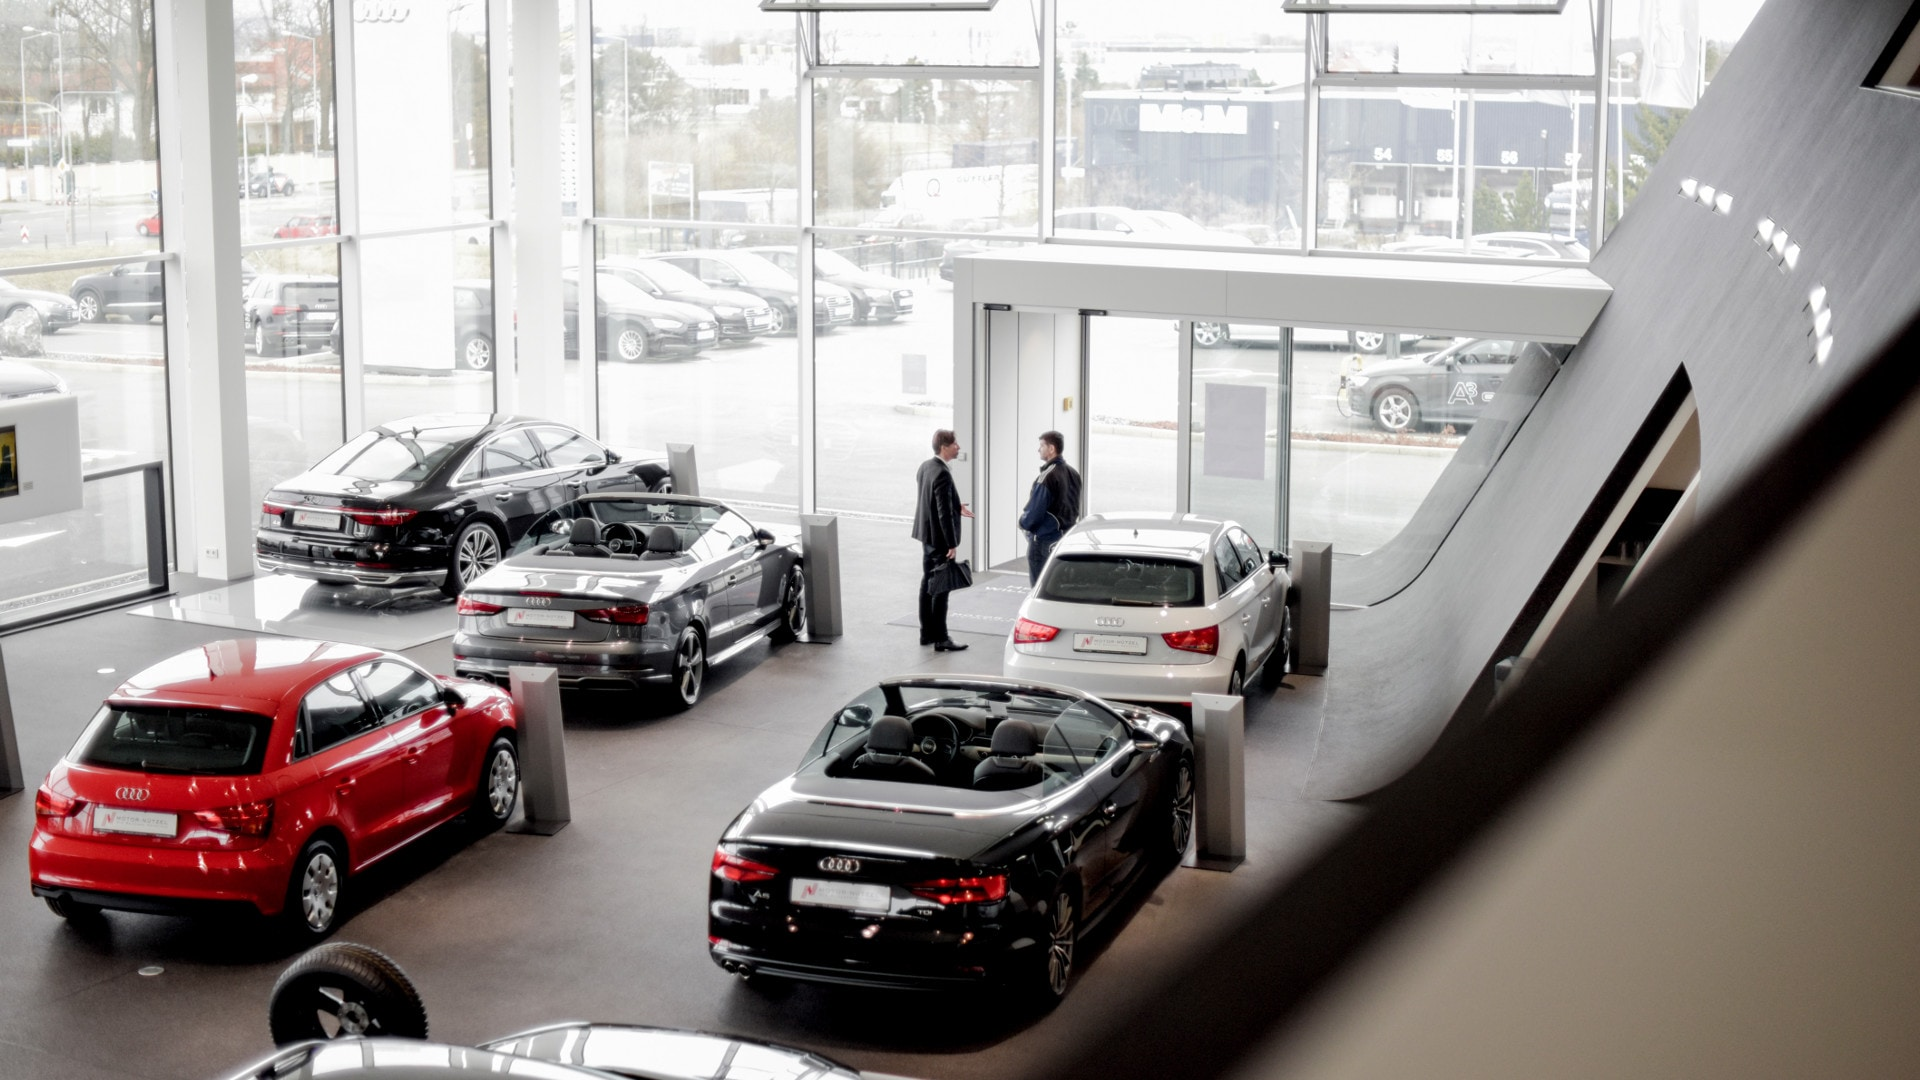 The car dealership that opened in 2016 offers the latest Audi model range for customers to test.